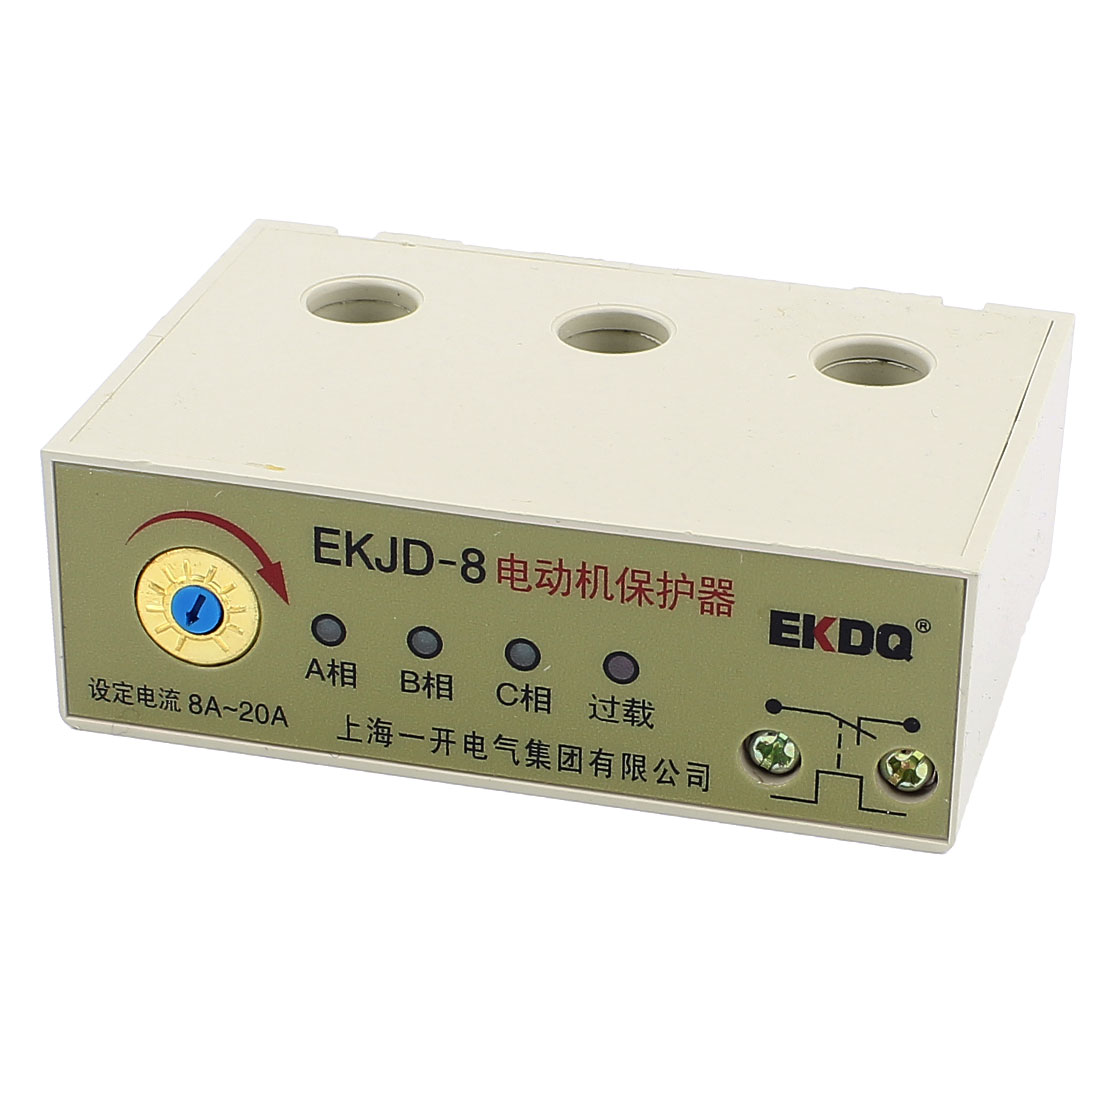 EKJD-8/8-20A 3 Phase 8-20 Ampere Adjustable Current Breaker Motor Circuit Protector Non Power